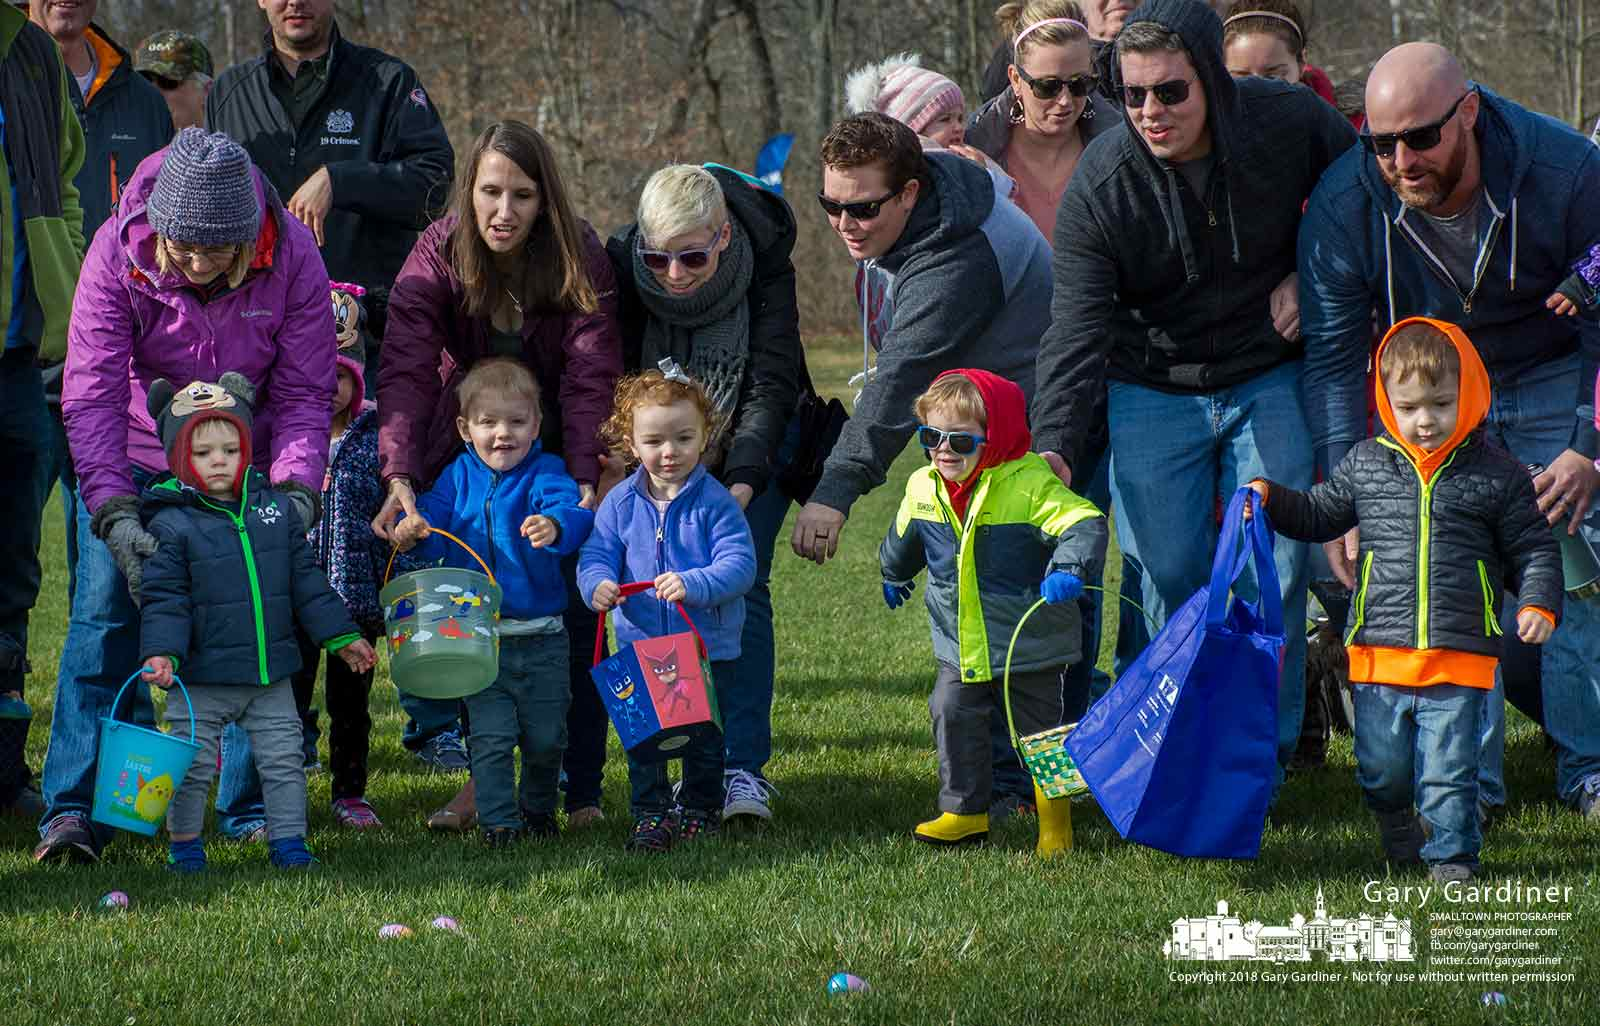 Parents release hold on their children at the start of one of the egg hunts at the city sports complex on Cleveland Ave. where 8,000 brightly colored eggs containing candy and toys disappeared into baskets and bags within about a minute after the starter's gun countdown. My Final Photo for March 31, 2018.